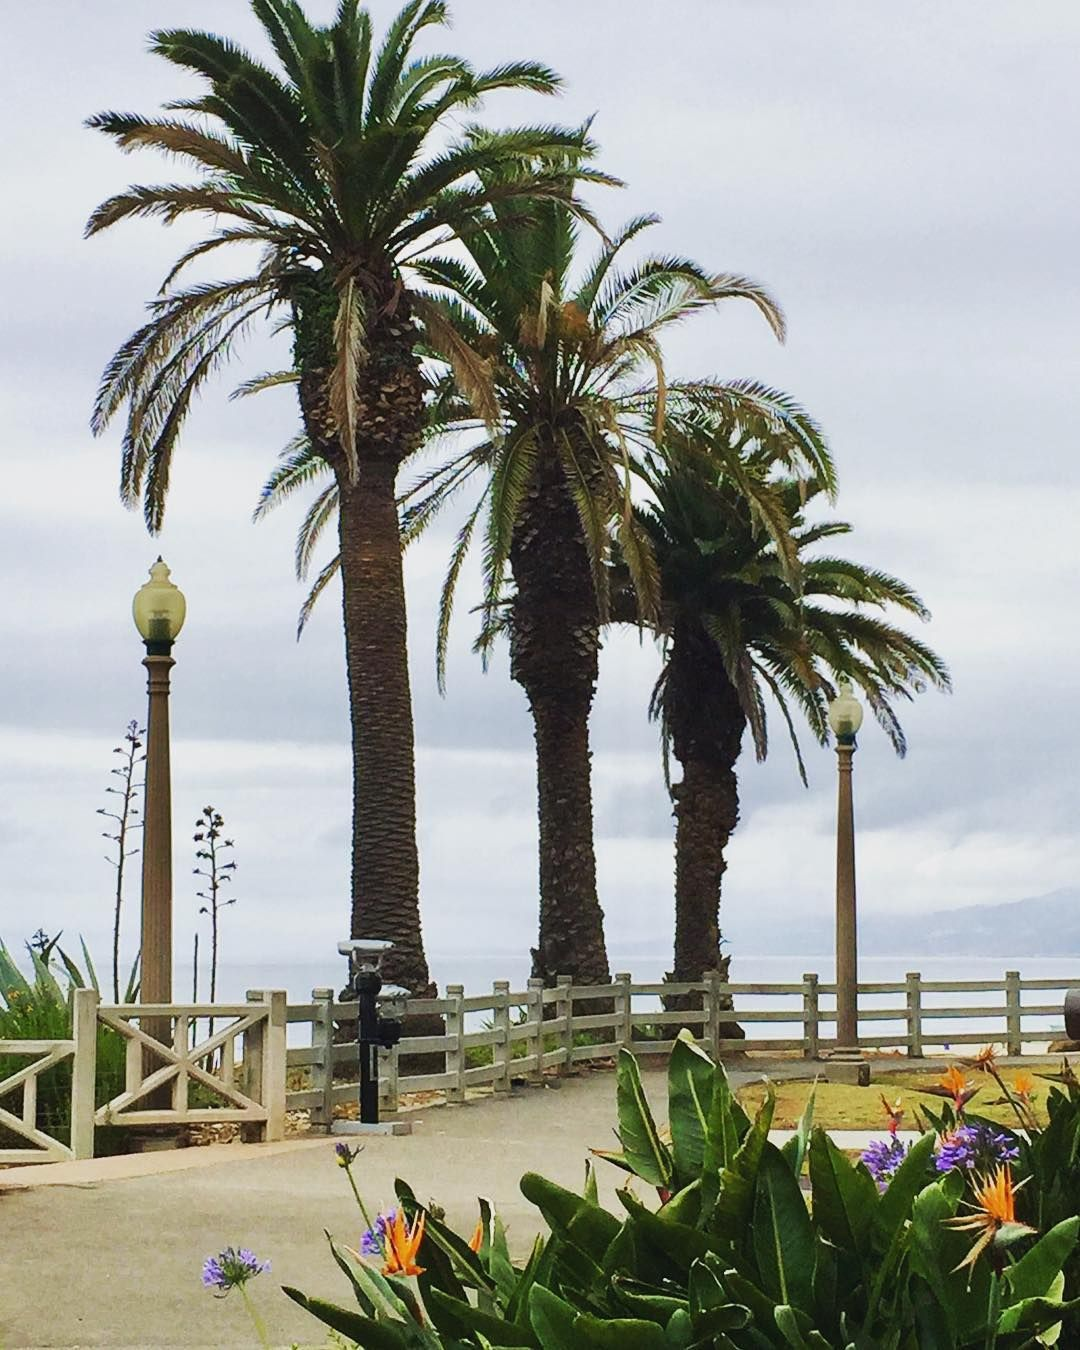 Even on a cloudy morning I love #PalisadesPark in  #SantaMonica!   #southerncalifornia #palmtrees #walkingpath #oceanview #oceanbreeze #socallifestyle